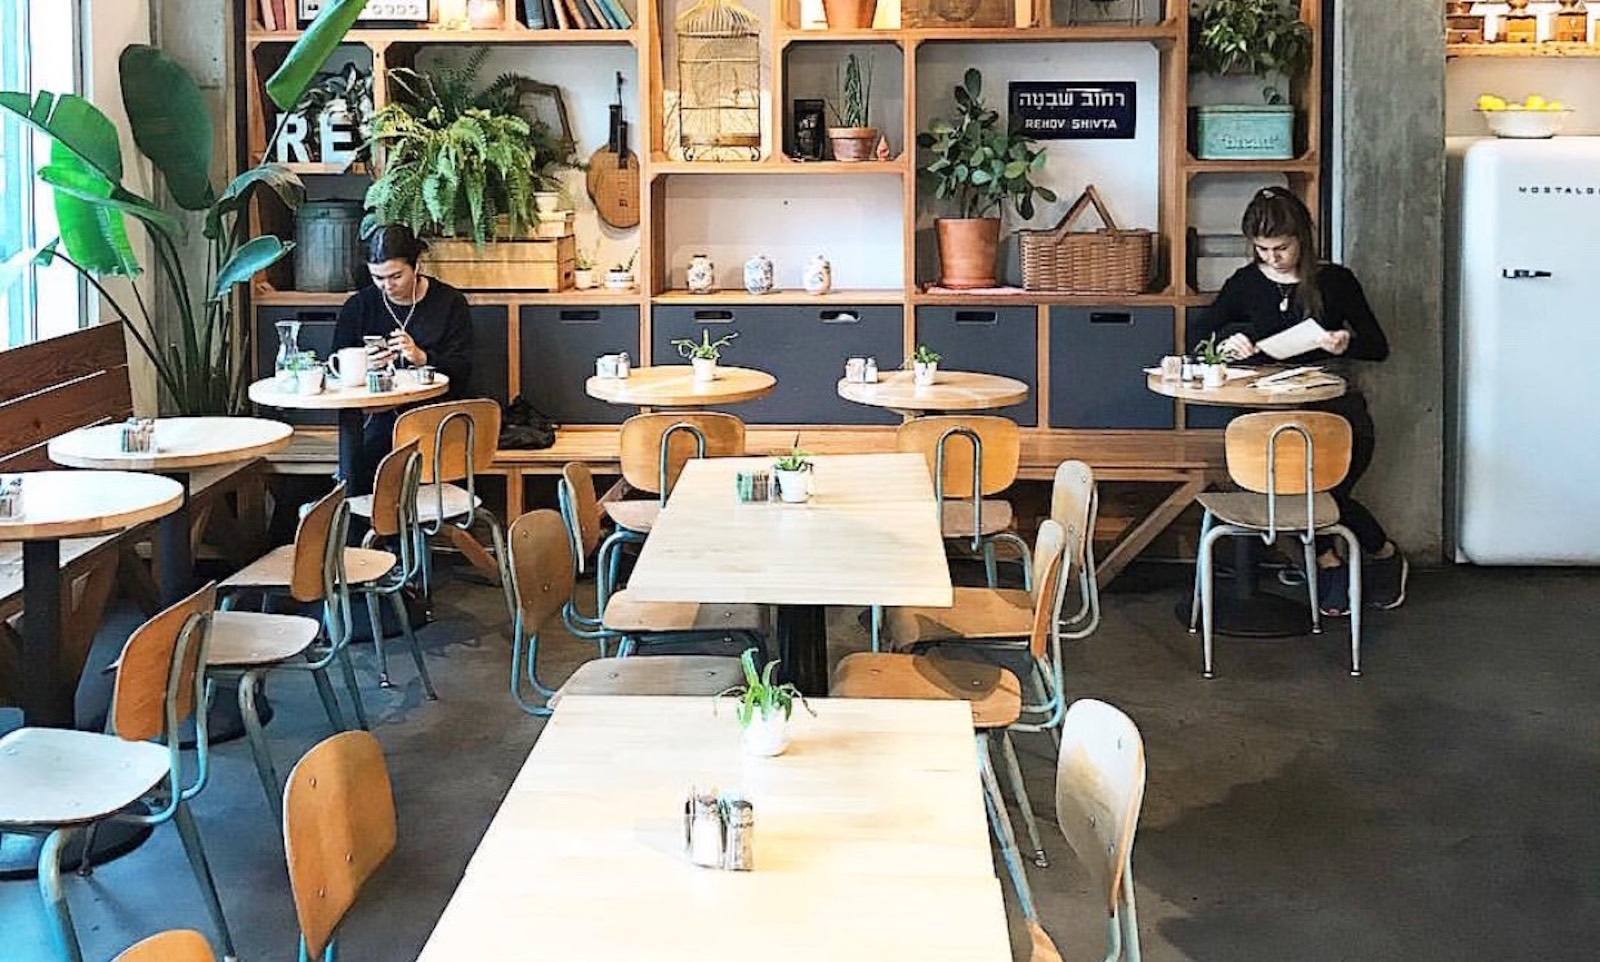 The Best Brunch Spots In Williamsburg New York The Infatuation